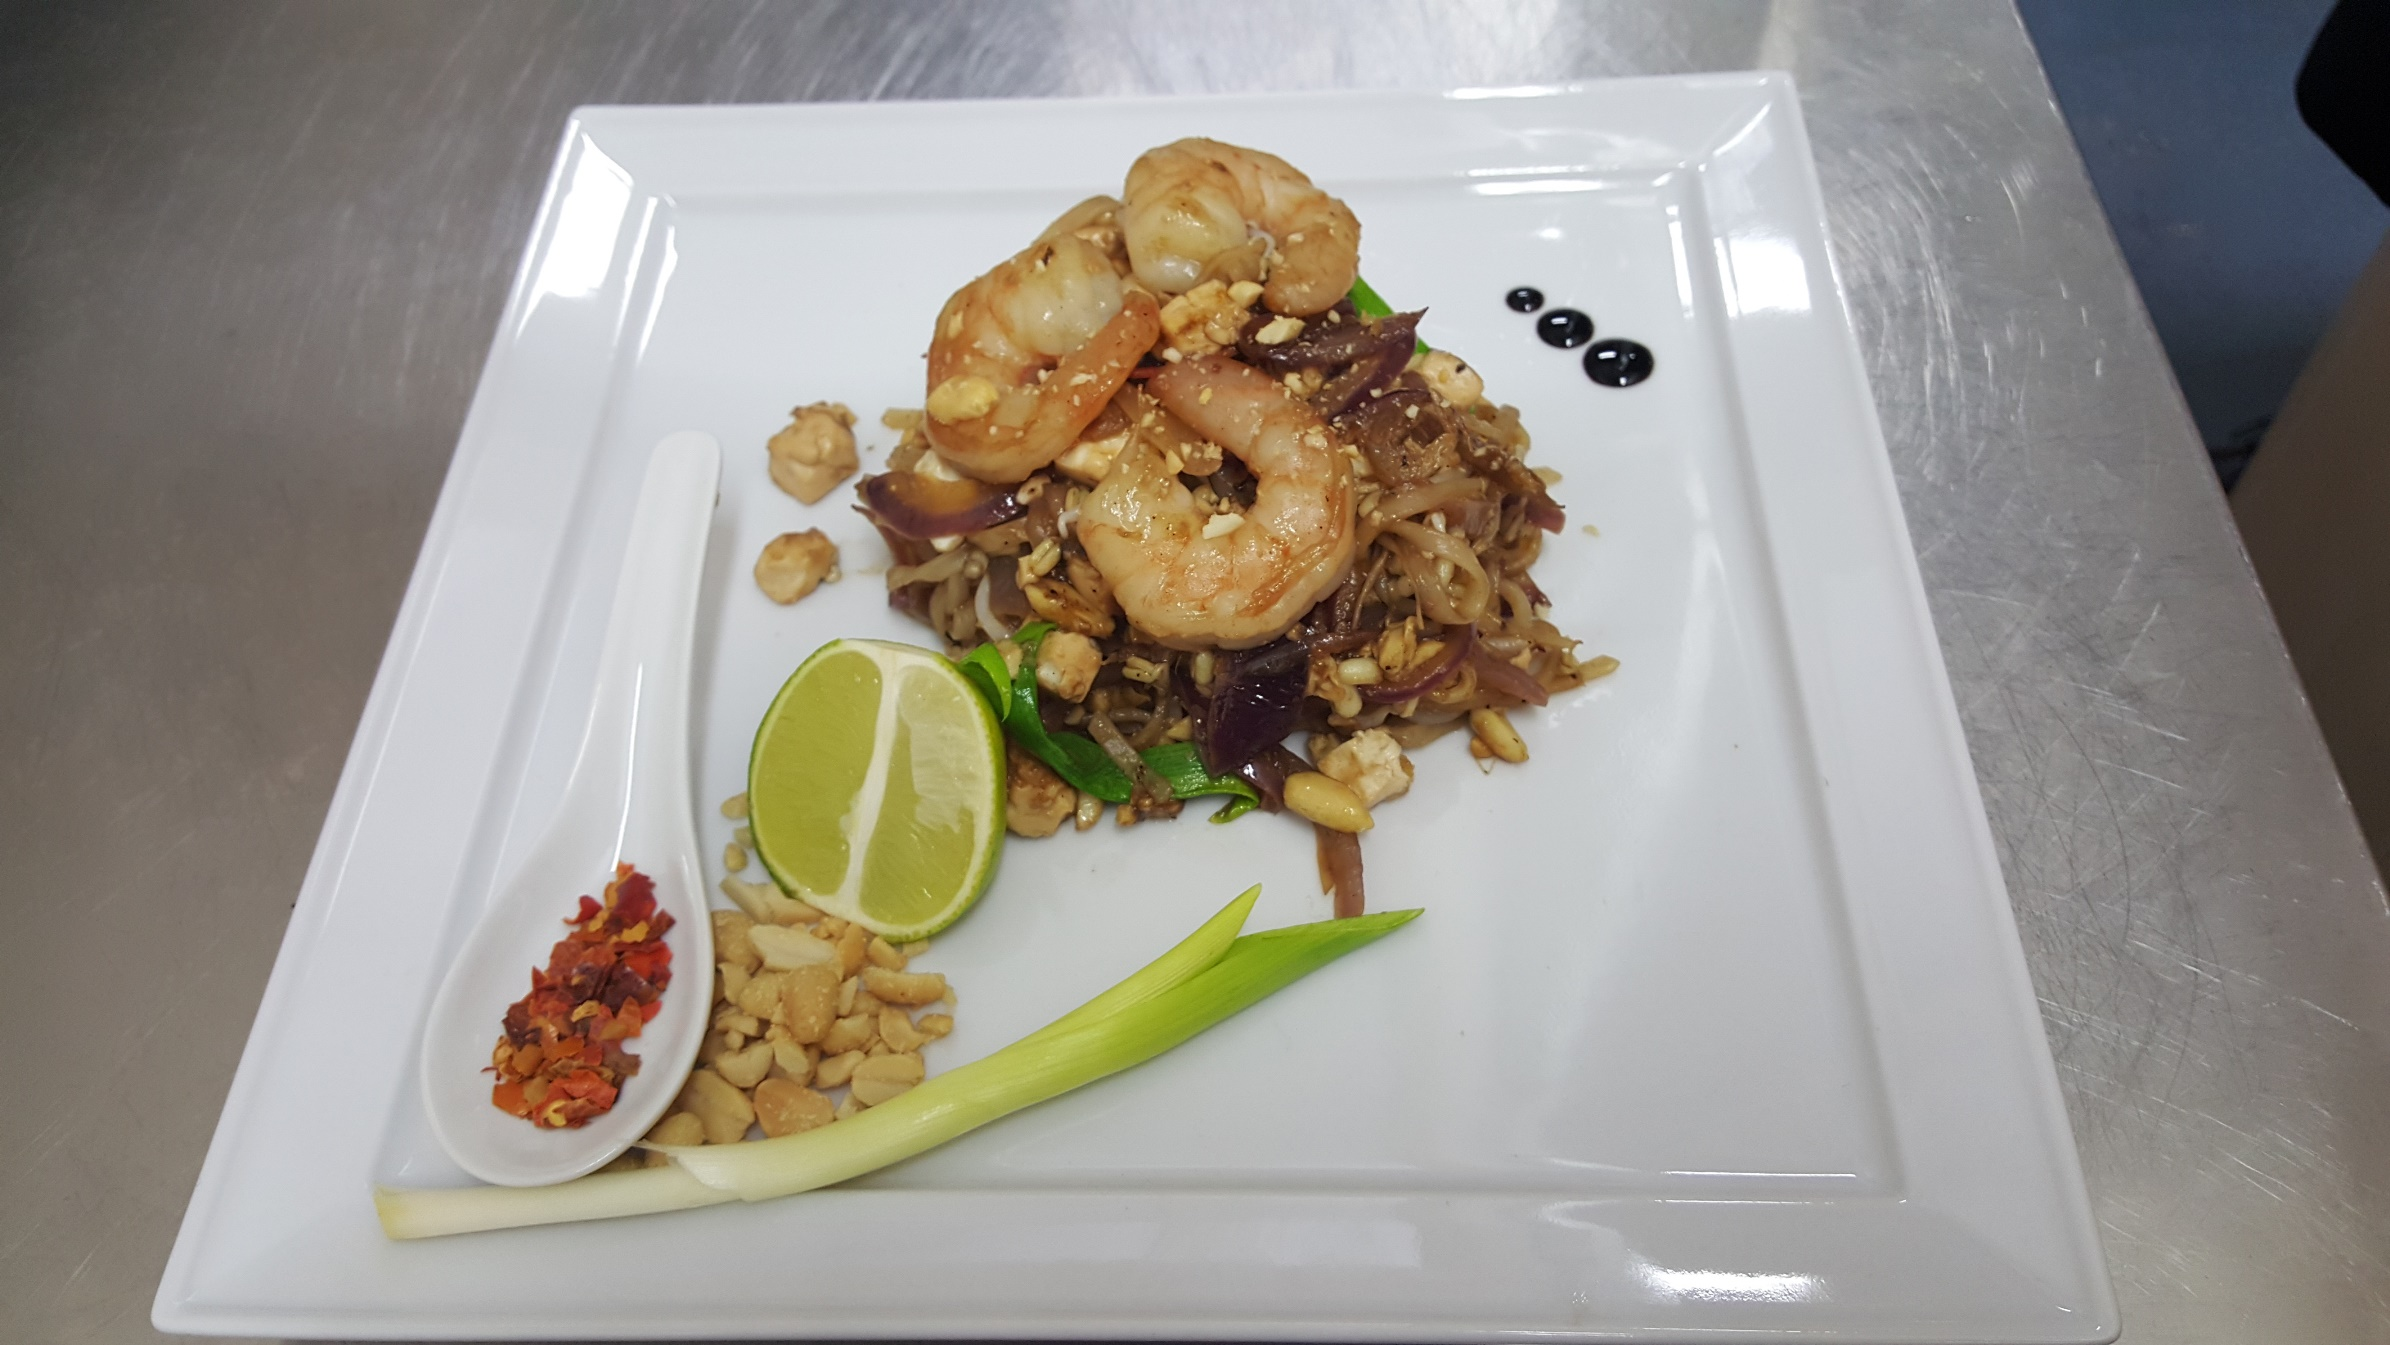 PAD THAI NOODLES - probably most famous and loved recipe of Thai cuisine - jumbo prawns, 	 soya beans sprouts, tofu cheese, egg, red onion in aromatic sauce with piquant sweet flavour